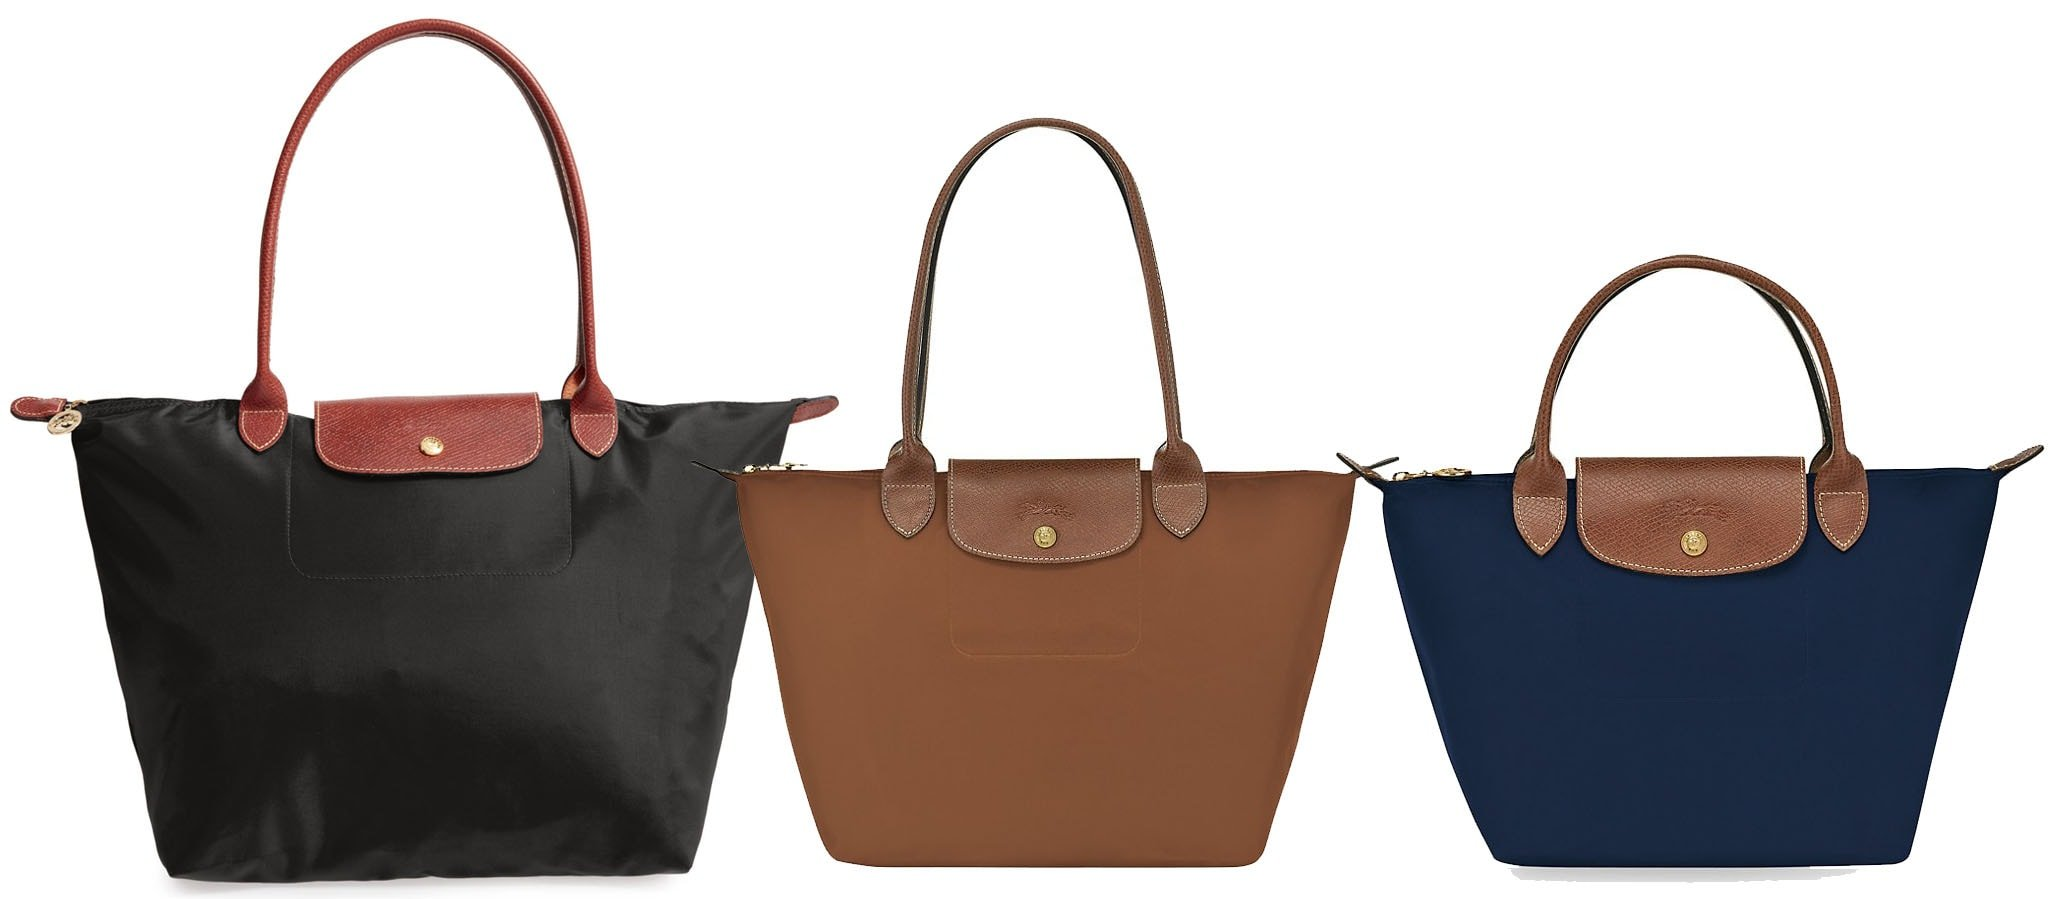 The Le Pliage is Longchamp's most popular bag style, made from nylon with embossed leather trims